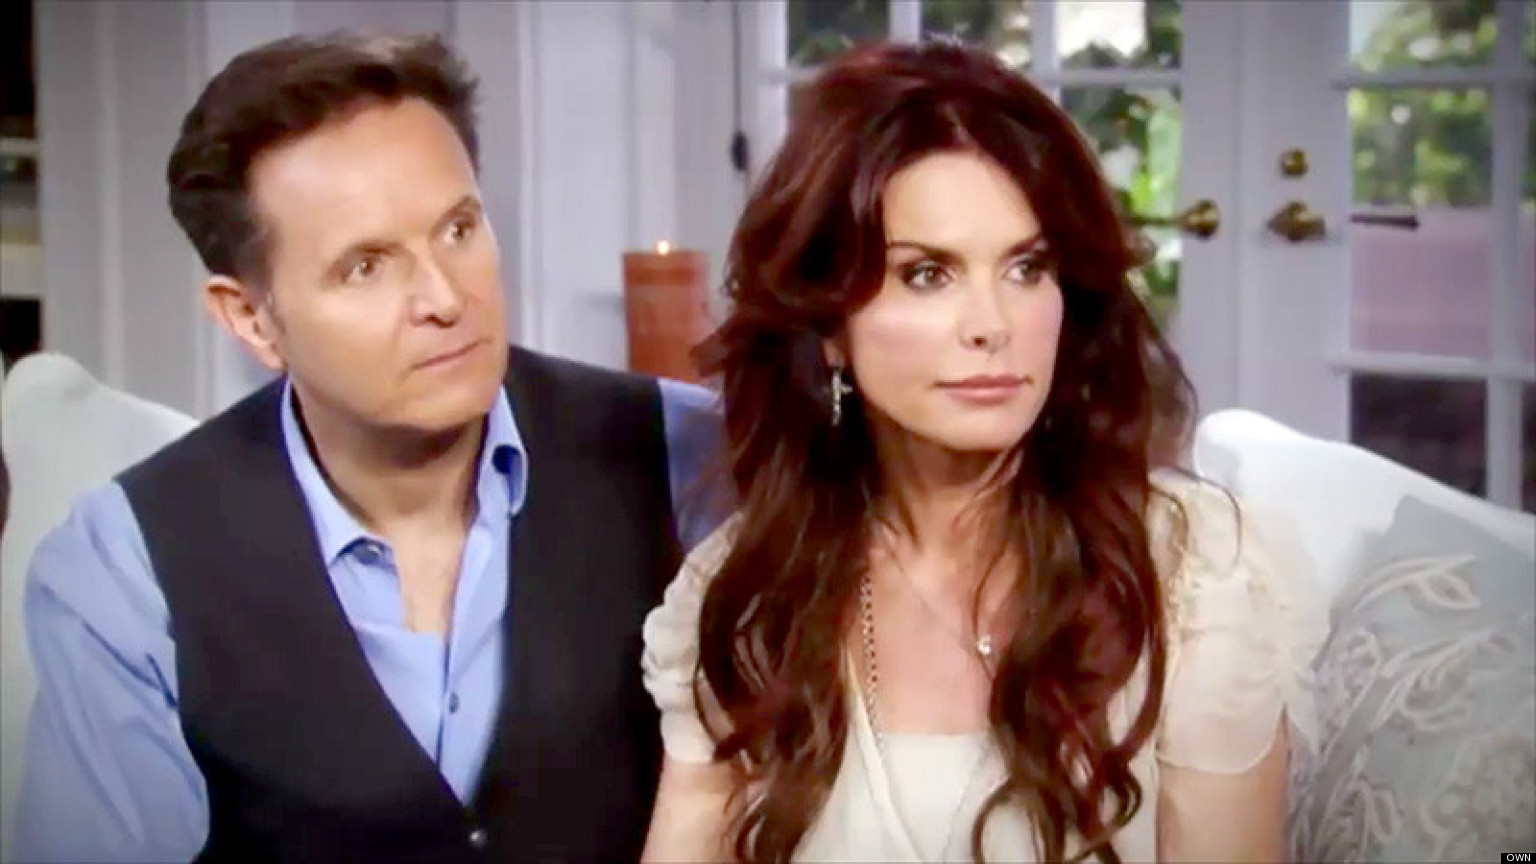 WATCH: Mark Burnett And Roma Downey Respond To Satan-Obama Controversy